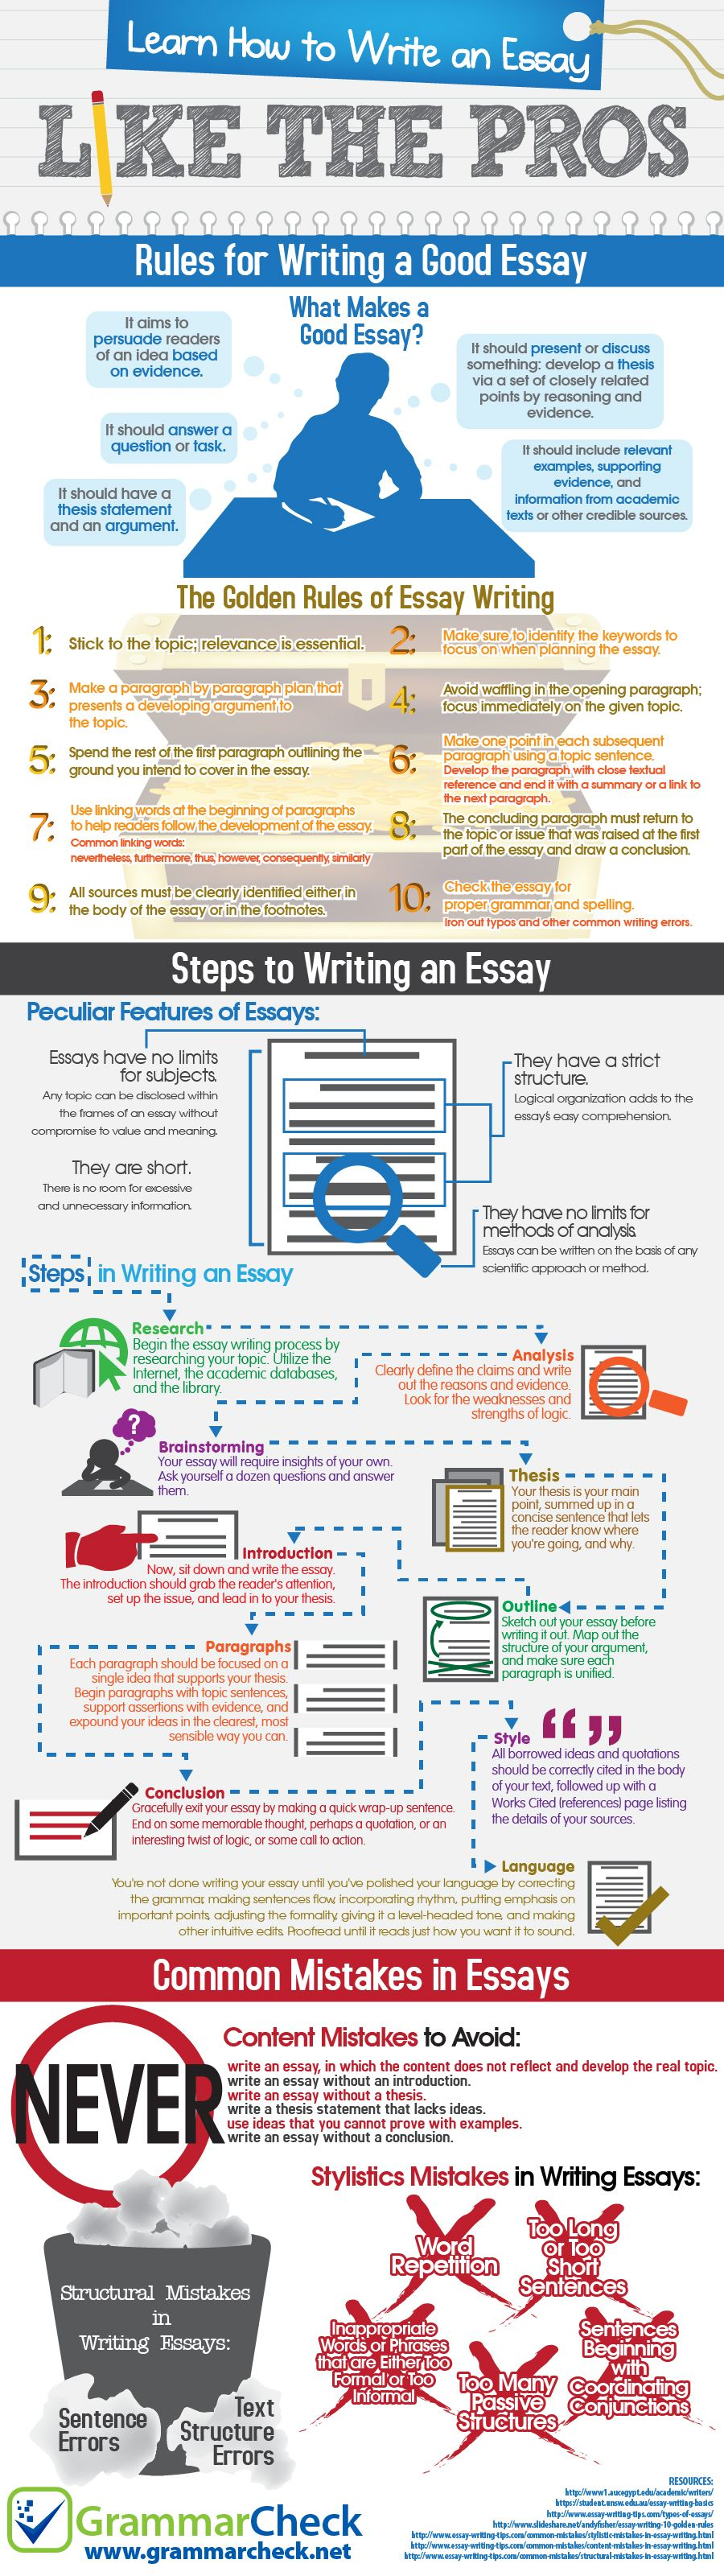 rules for writing percentages in an essay Writing numbers except for a few basic rules, spelling out numbers vs using figures (also called numerals) is largely a matter of writers' preference.